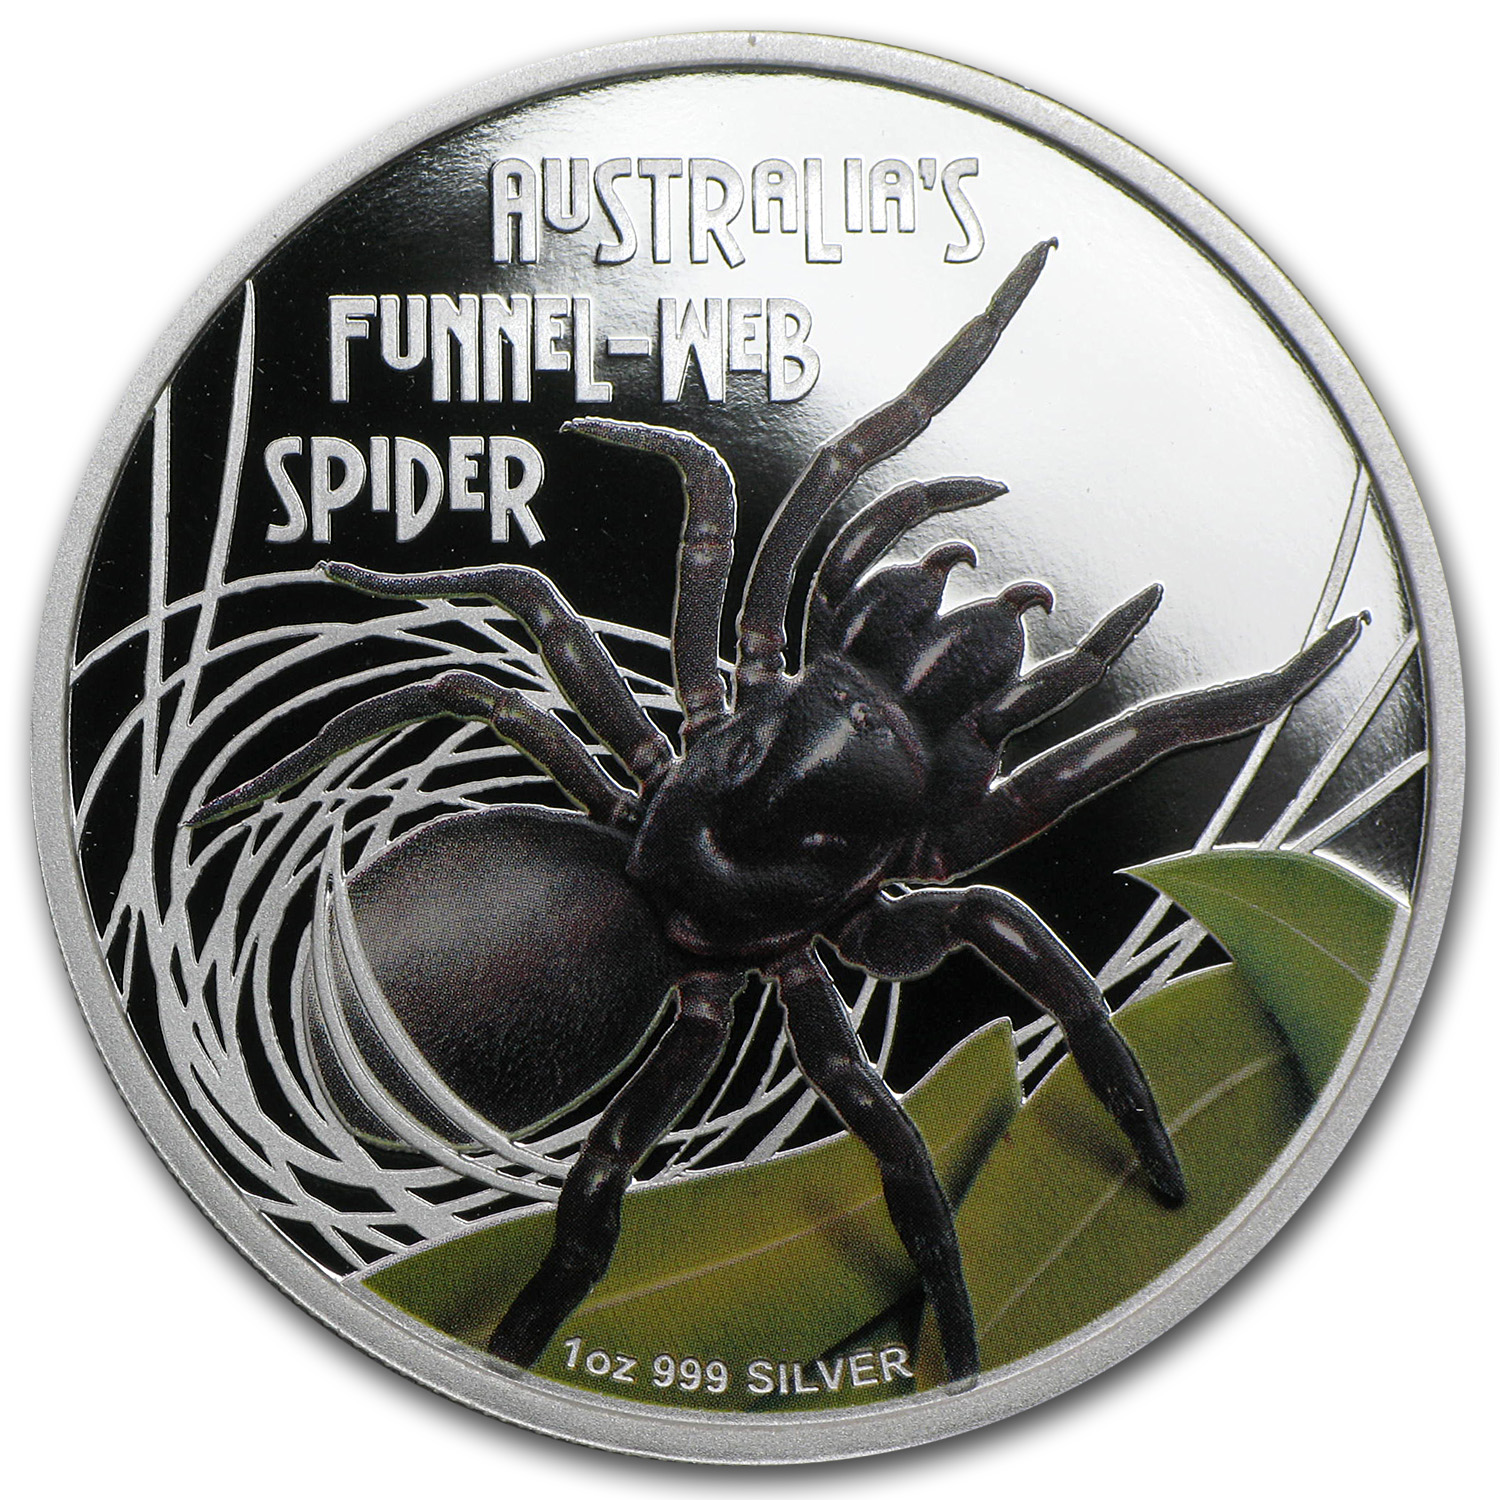 2012 1 oz Silver Australian Funnel Web Spider Proof